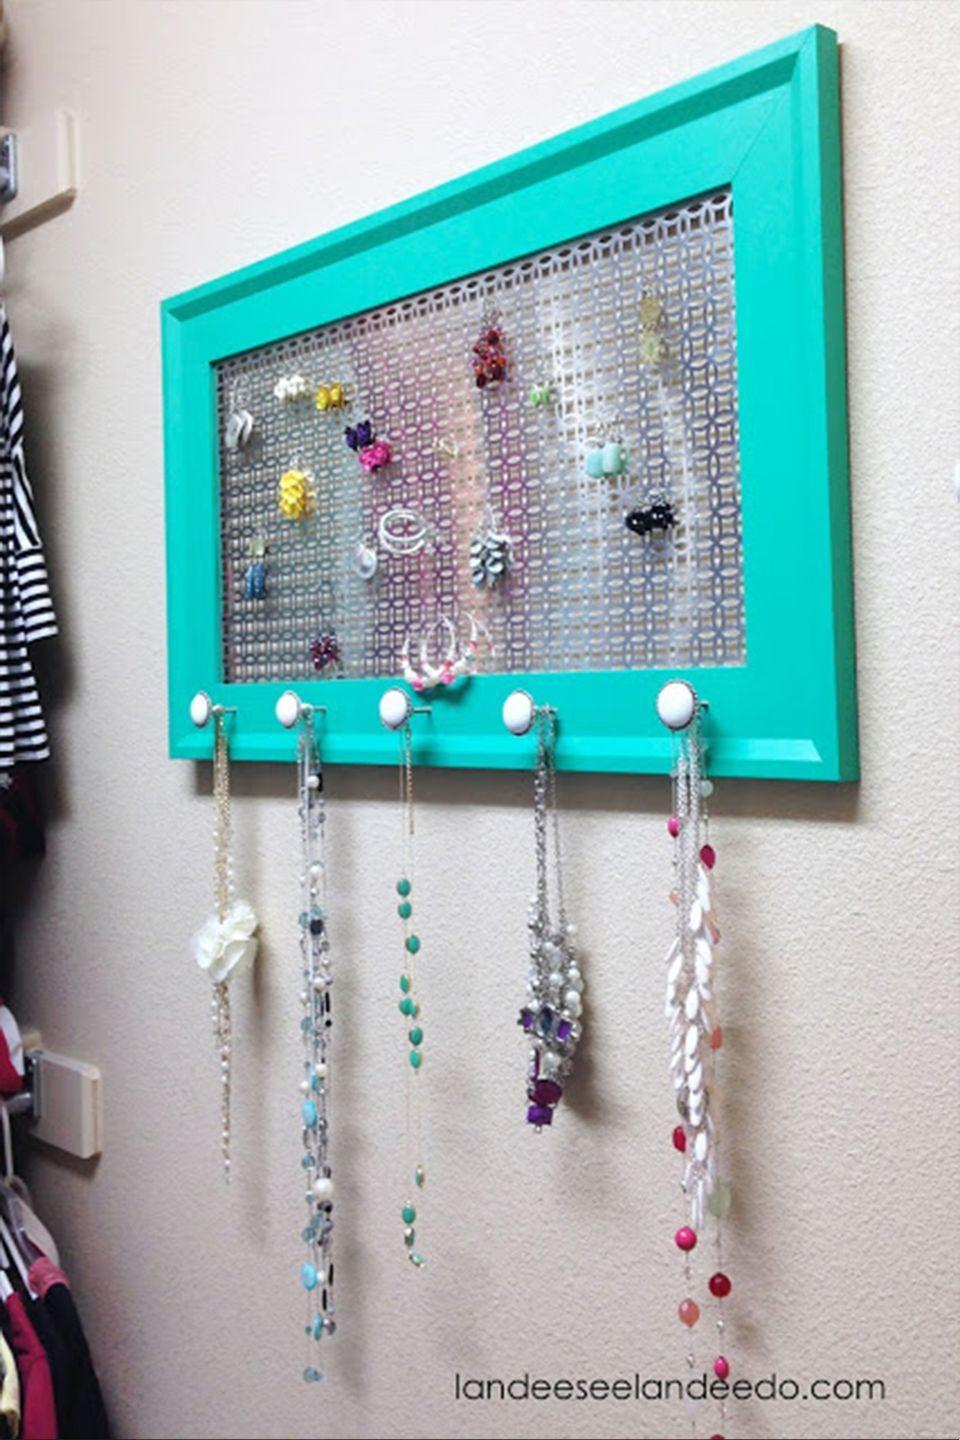 "<p>You and your siblings have given mom lots of handmade jewelry over the years, from macaroni necklaces to funky earrings. Now, it's time to give her a stylish way to organize 'em. </p><p><a href=""https://www.landeeseelandeedo.com/diy-jewelry-organizer"" rel=""nofollow noopener"" target=""_blank"" data-ylk=""slk:Get the tutorial at Landeelu »"" class=""link rapid-noclick-resp""><em>Get the tutorial at Landeelu »</em></a> </p>"